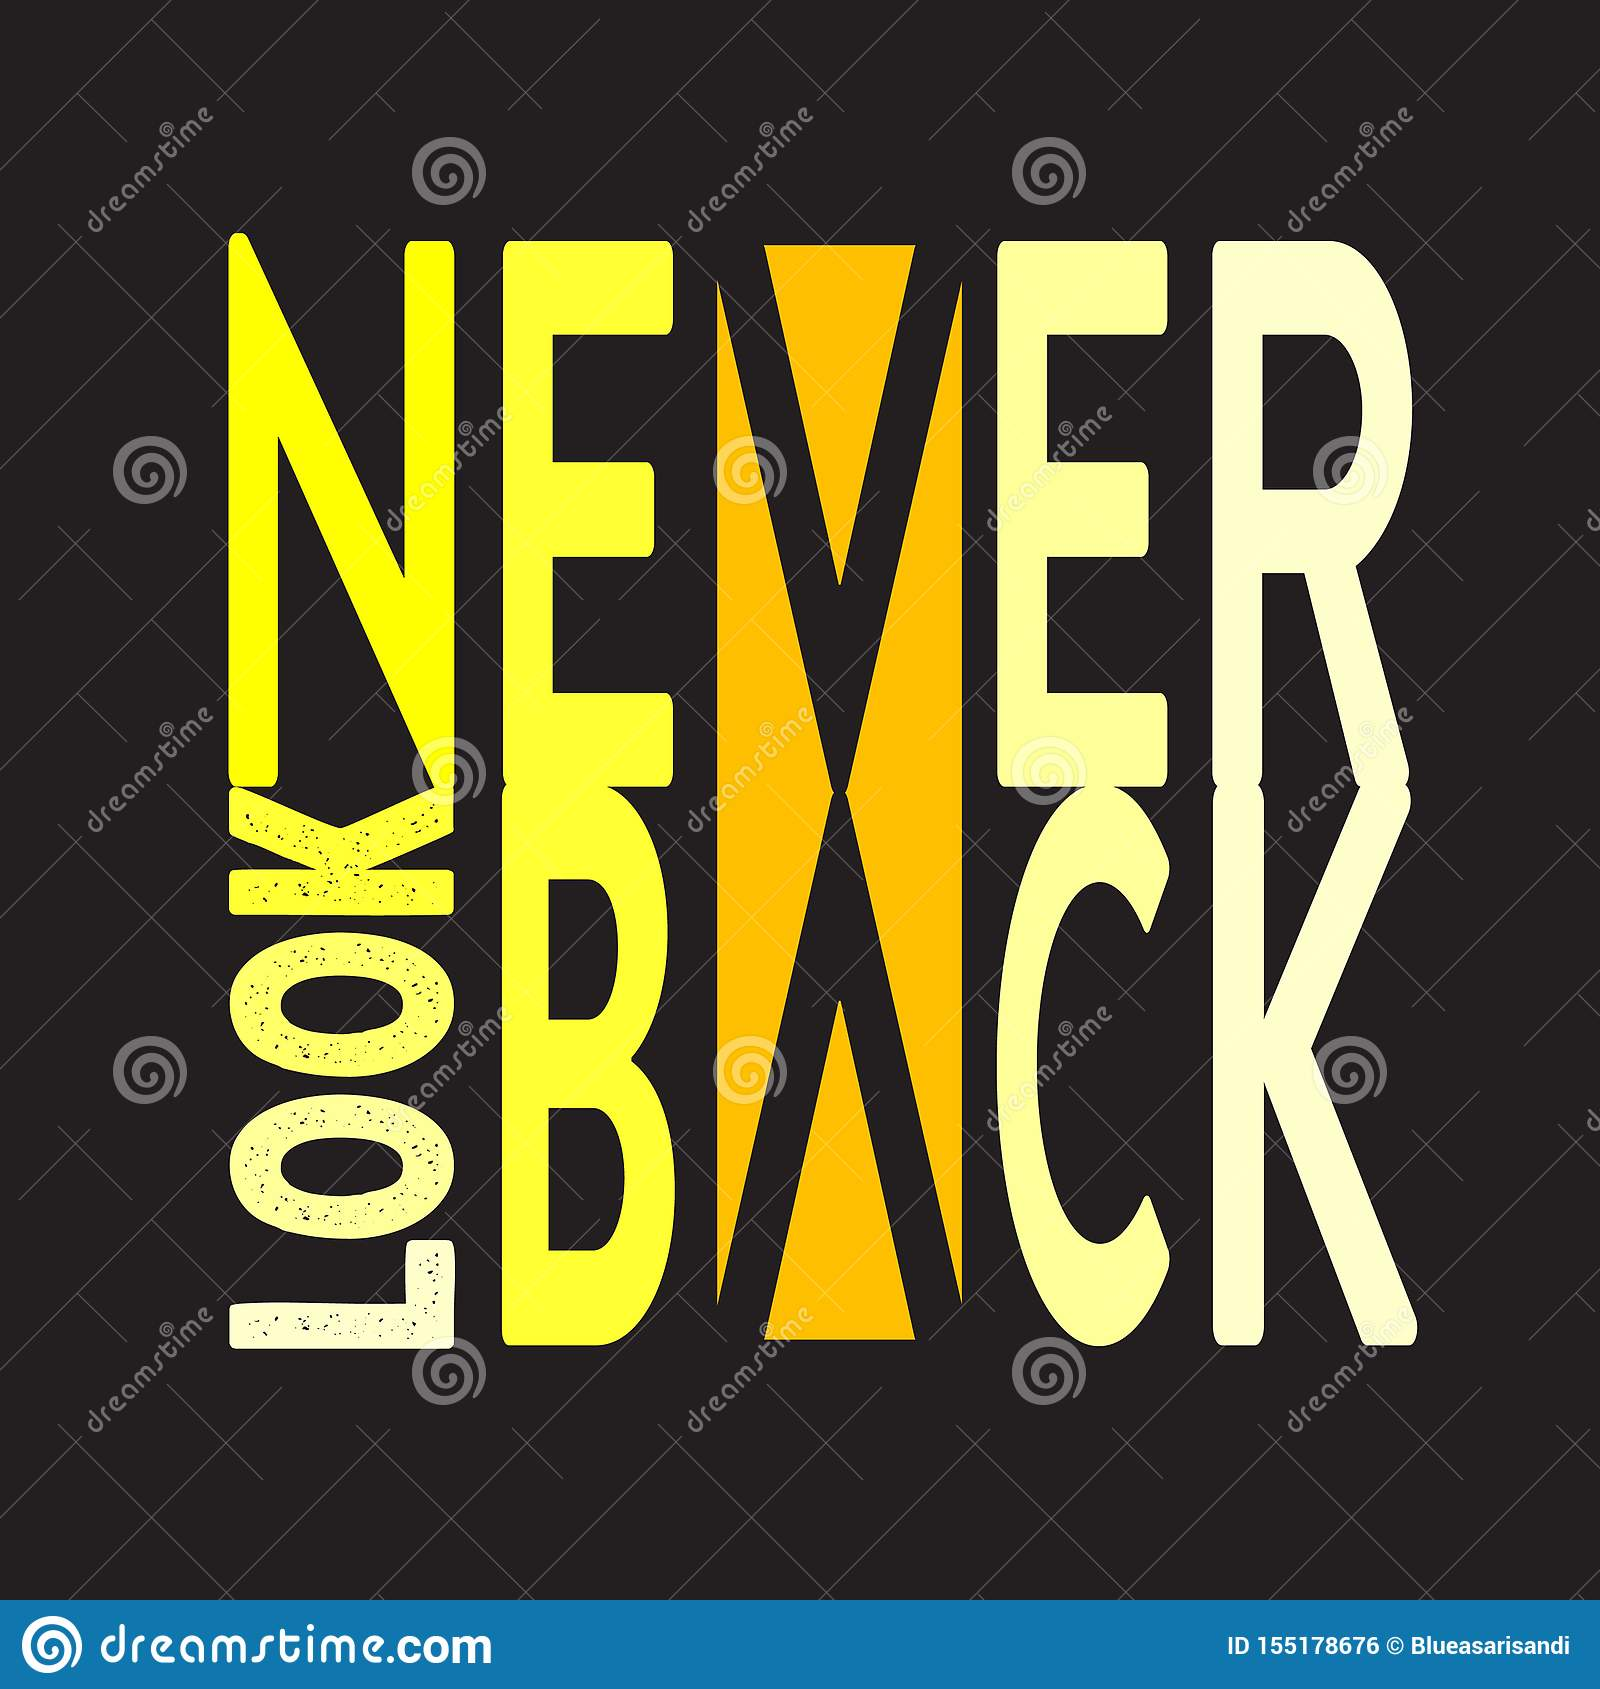 Never Look Back. Minimal Typography modern Fashion Slogan for T-shirt and apparels graphic